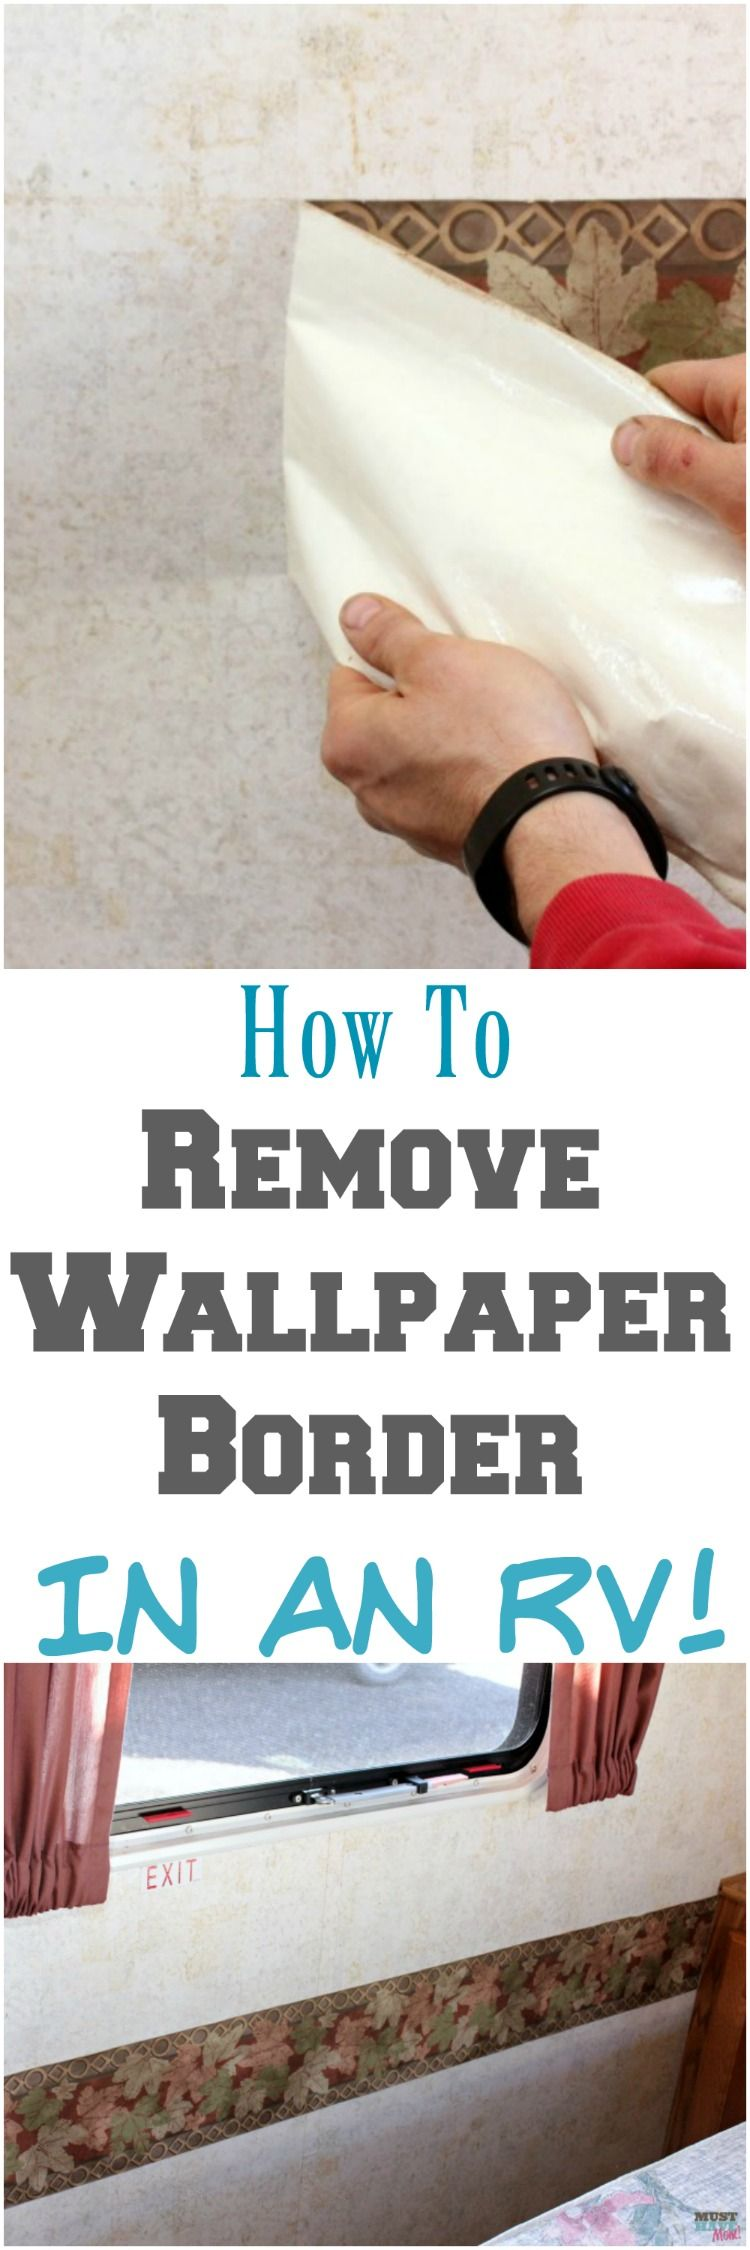 how to remove wallpaper border in an rv must have mom top mom blogger remodeled campers. Black Bedroom Furniture Sets. Home Design Ideas